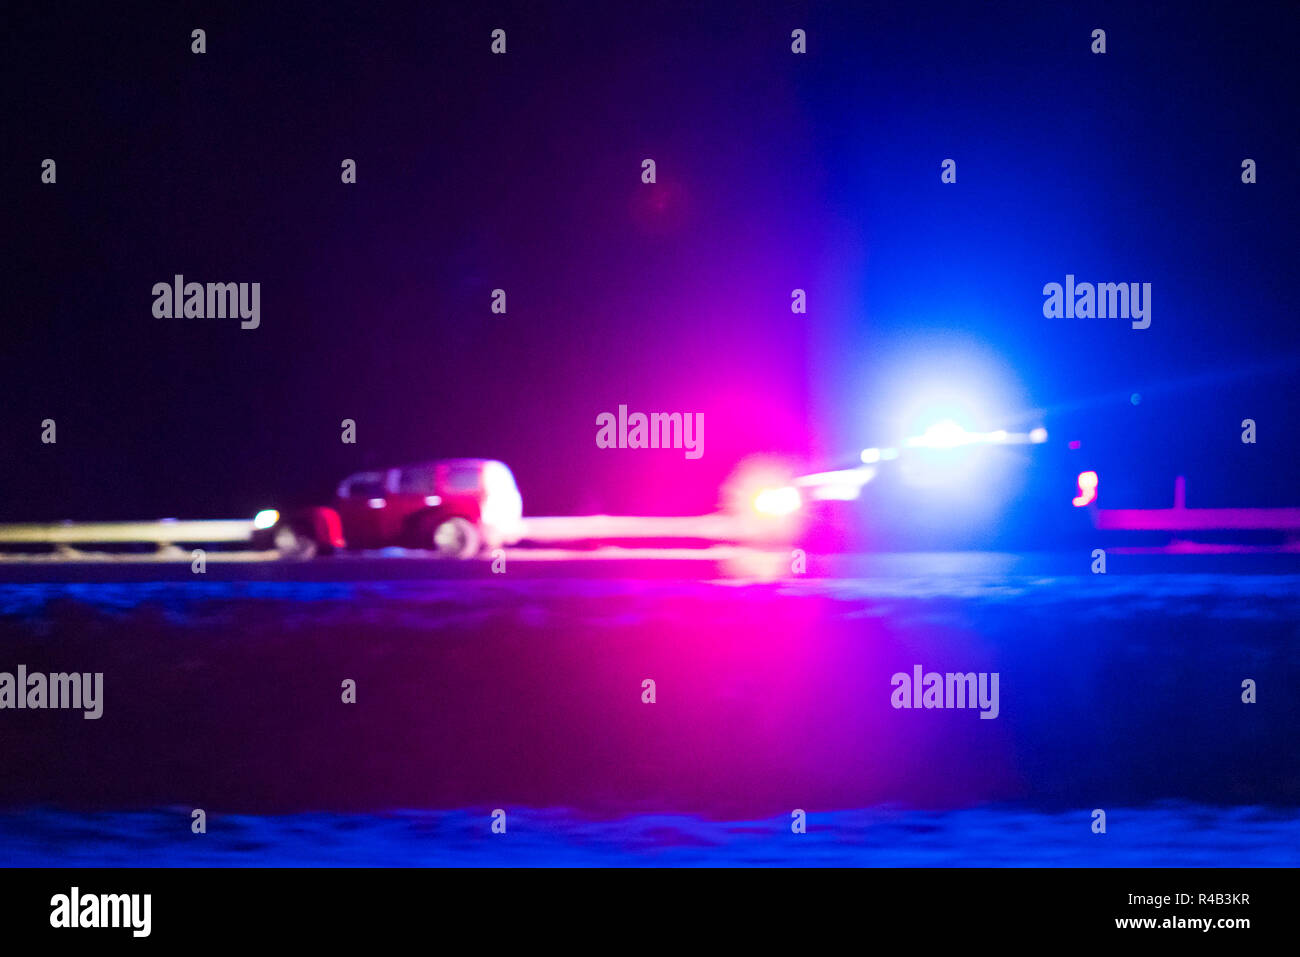 Police officer car catching a car with over speed limit at night time.  blurred. Stock Photo